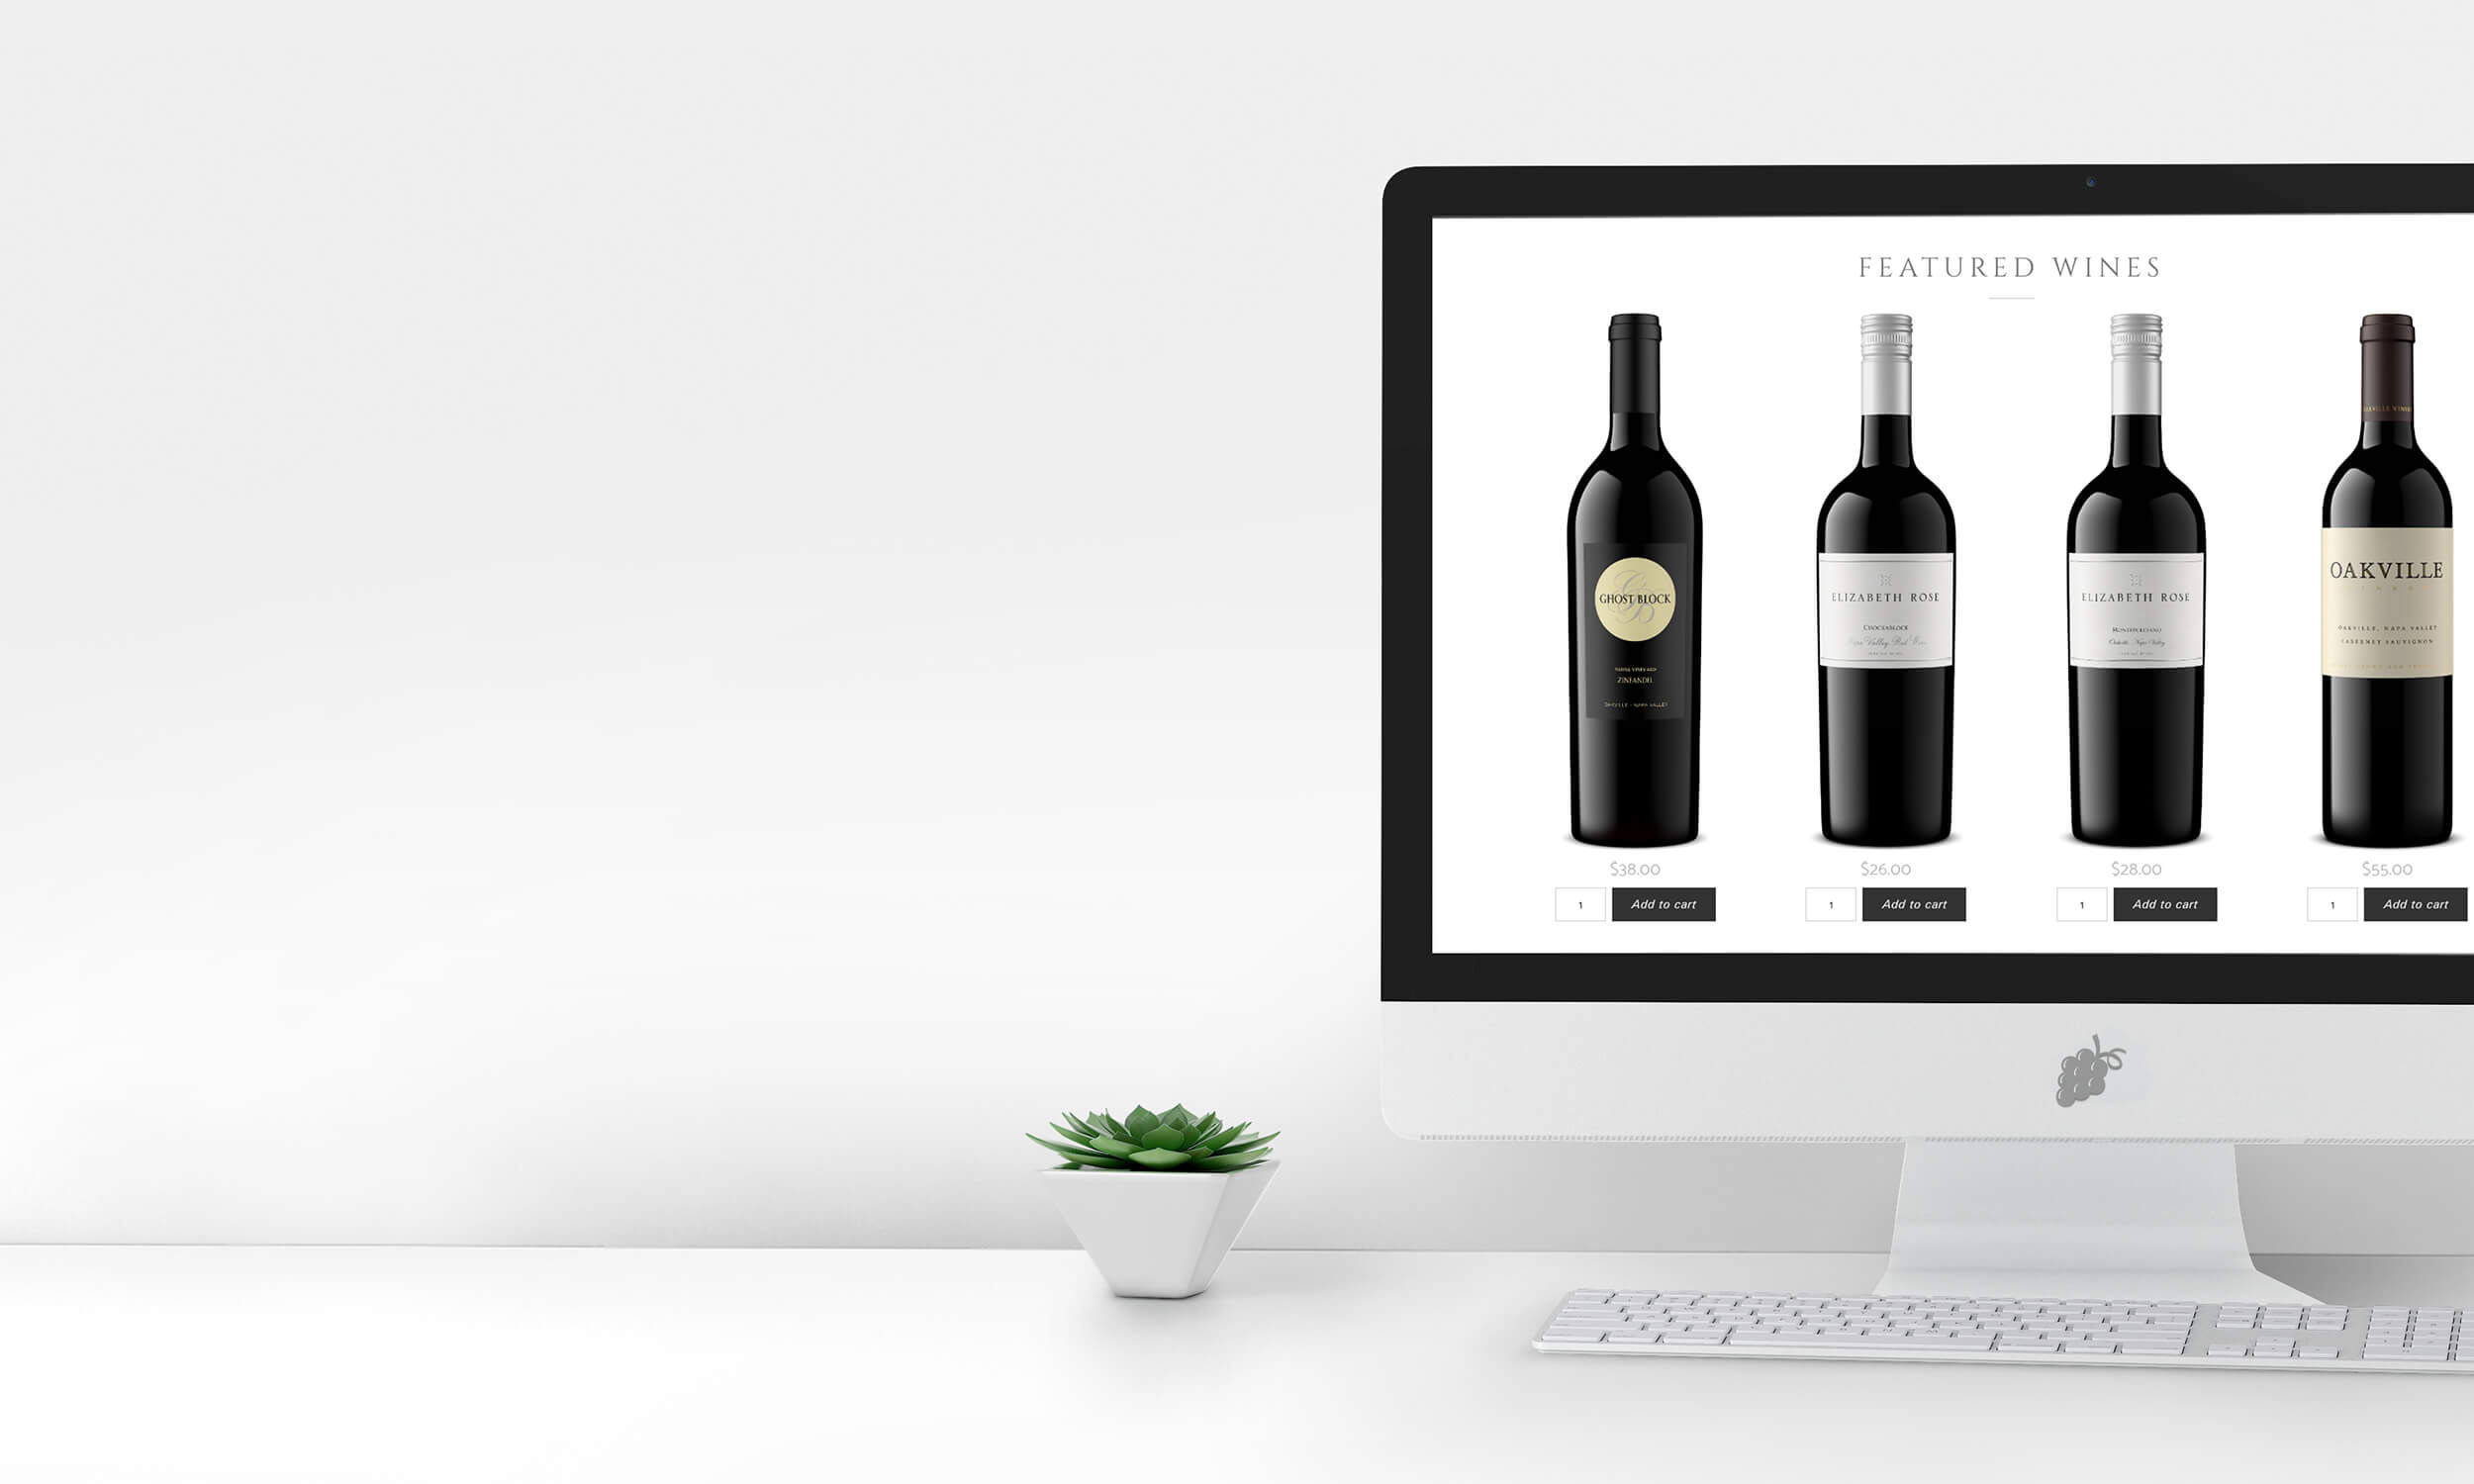 How bottle shots boost ecommerce wine sales